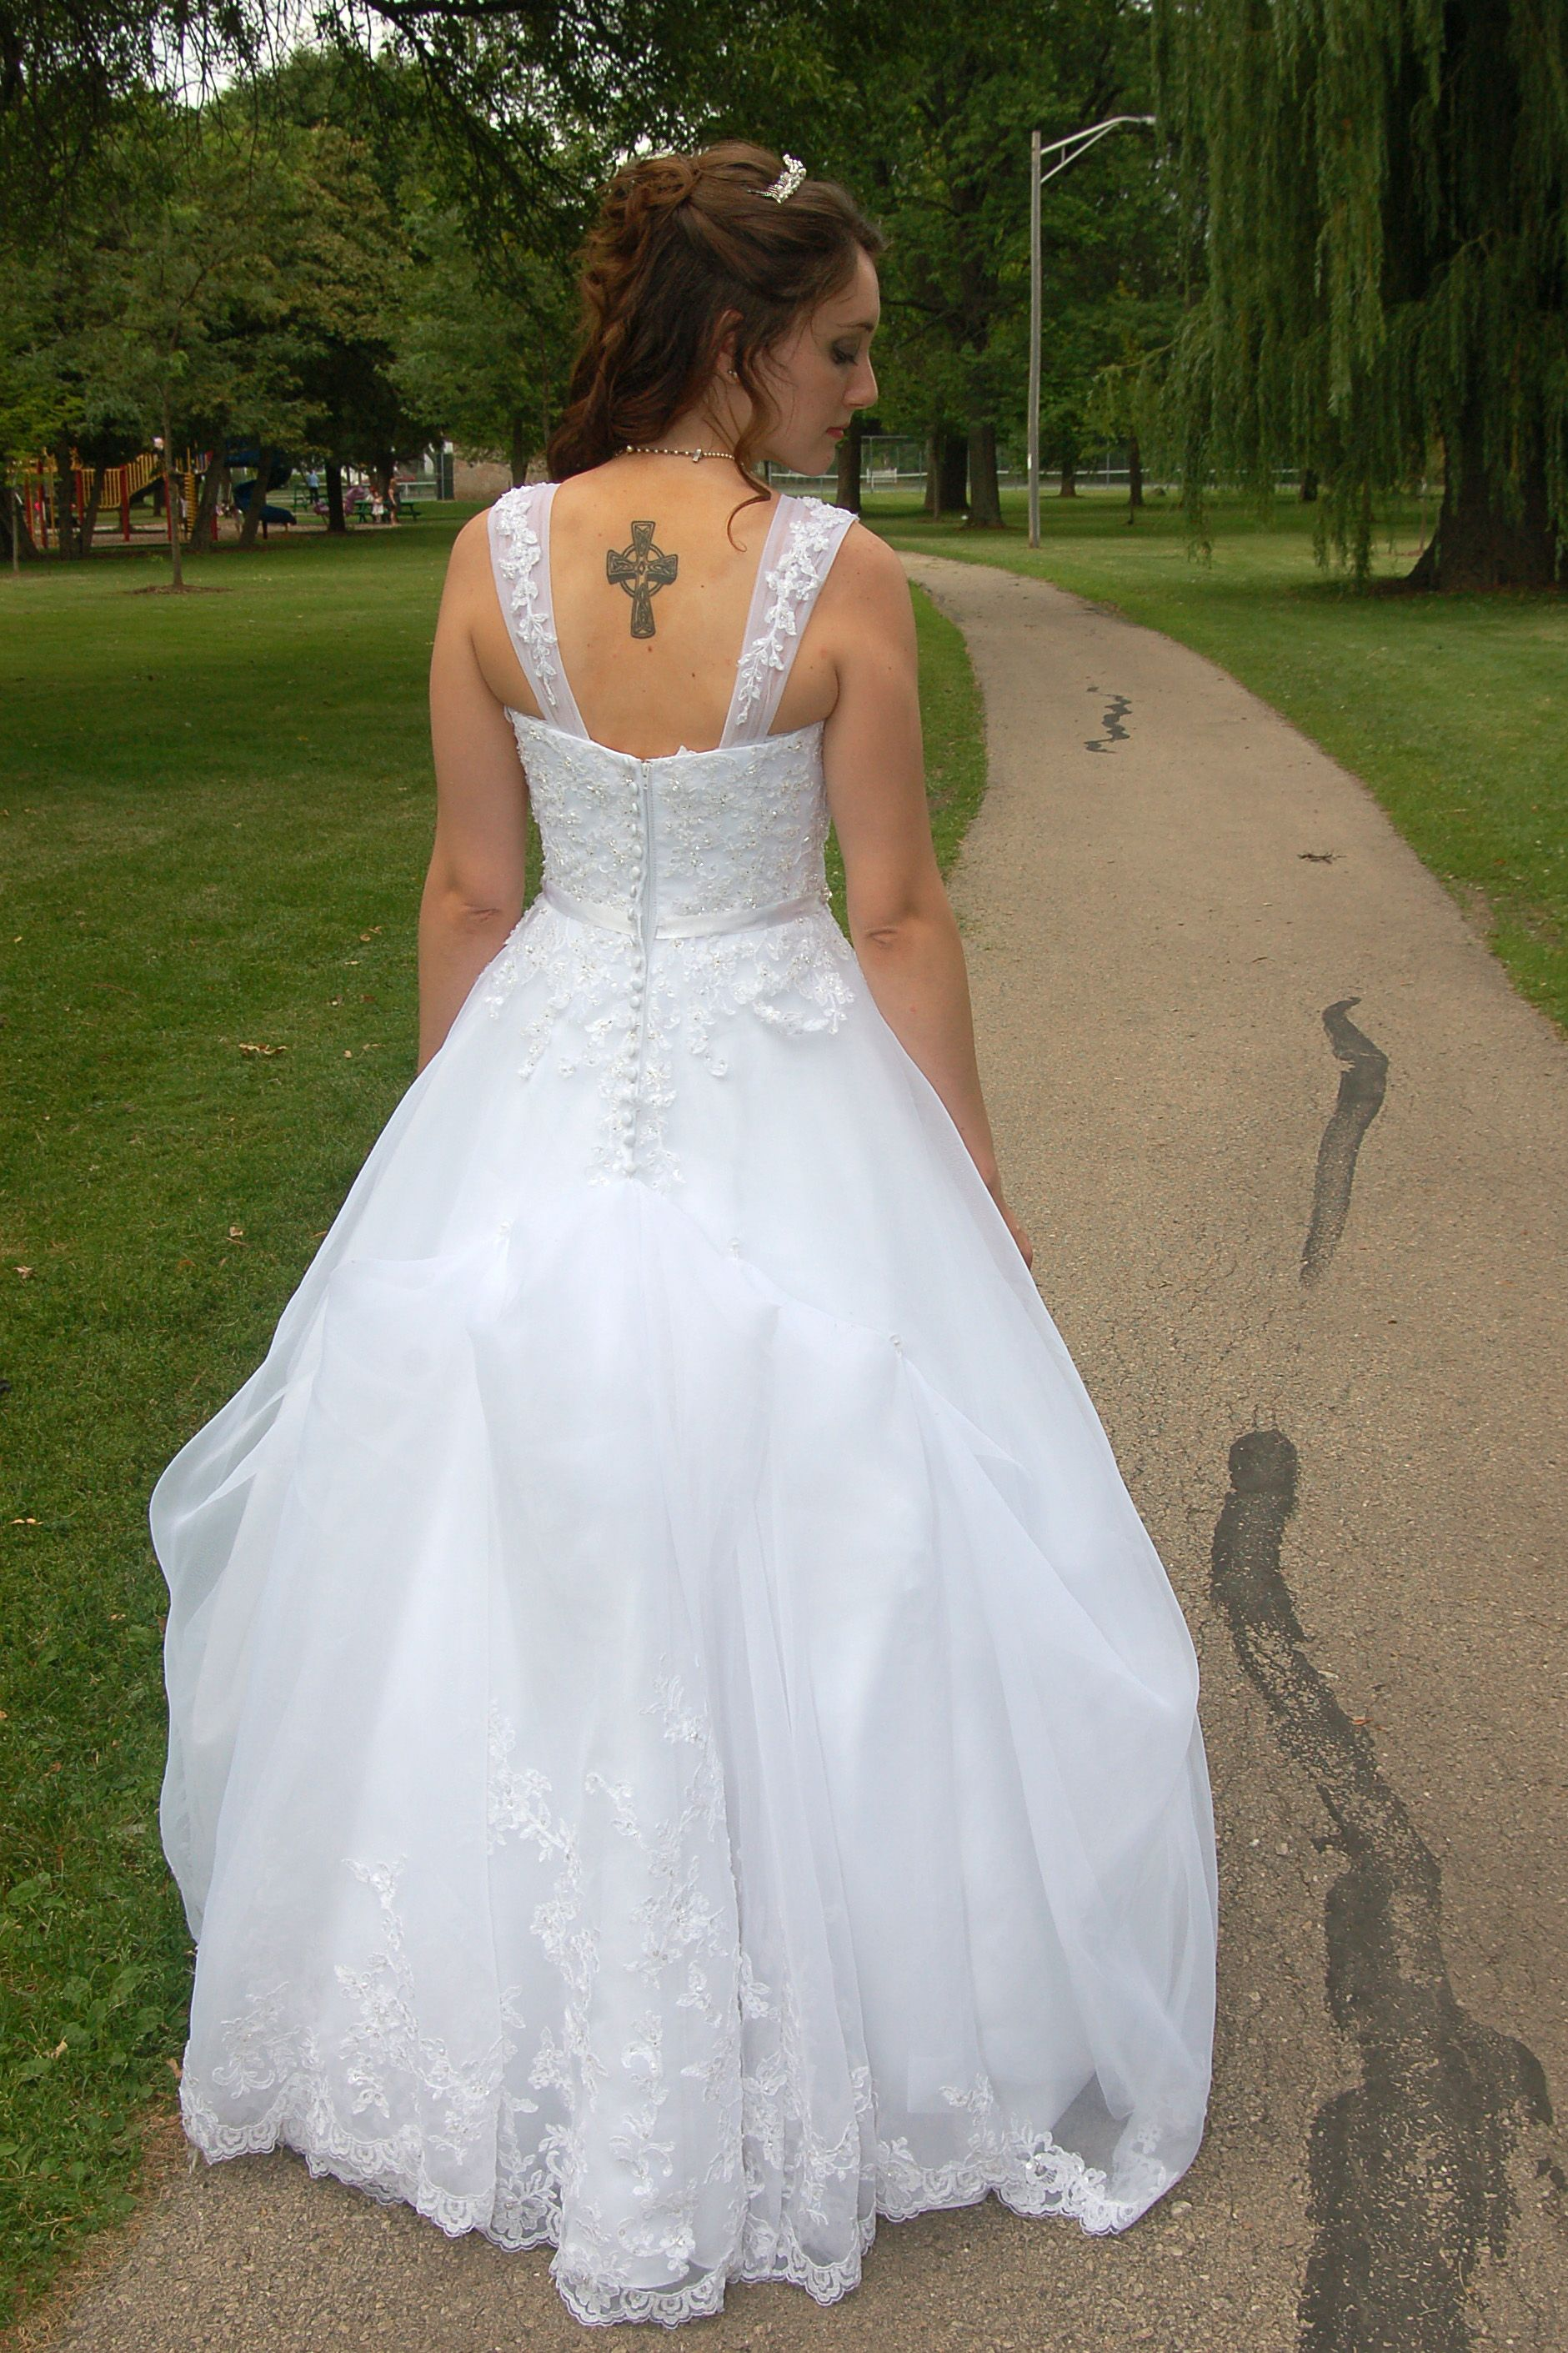 28+ Try on wedding dresses at home ireland information